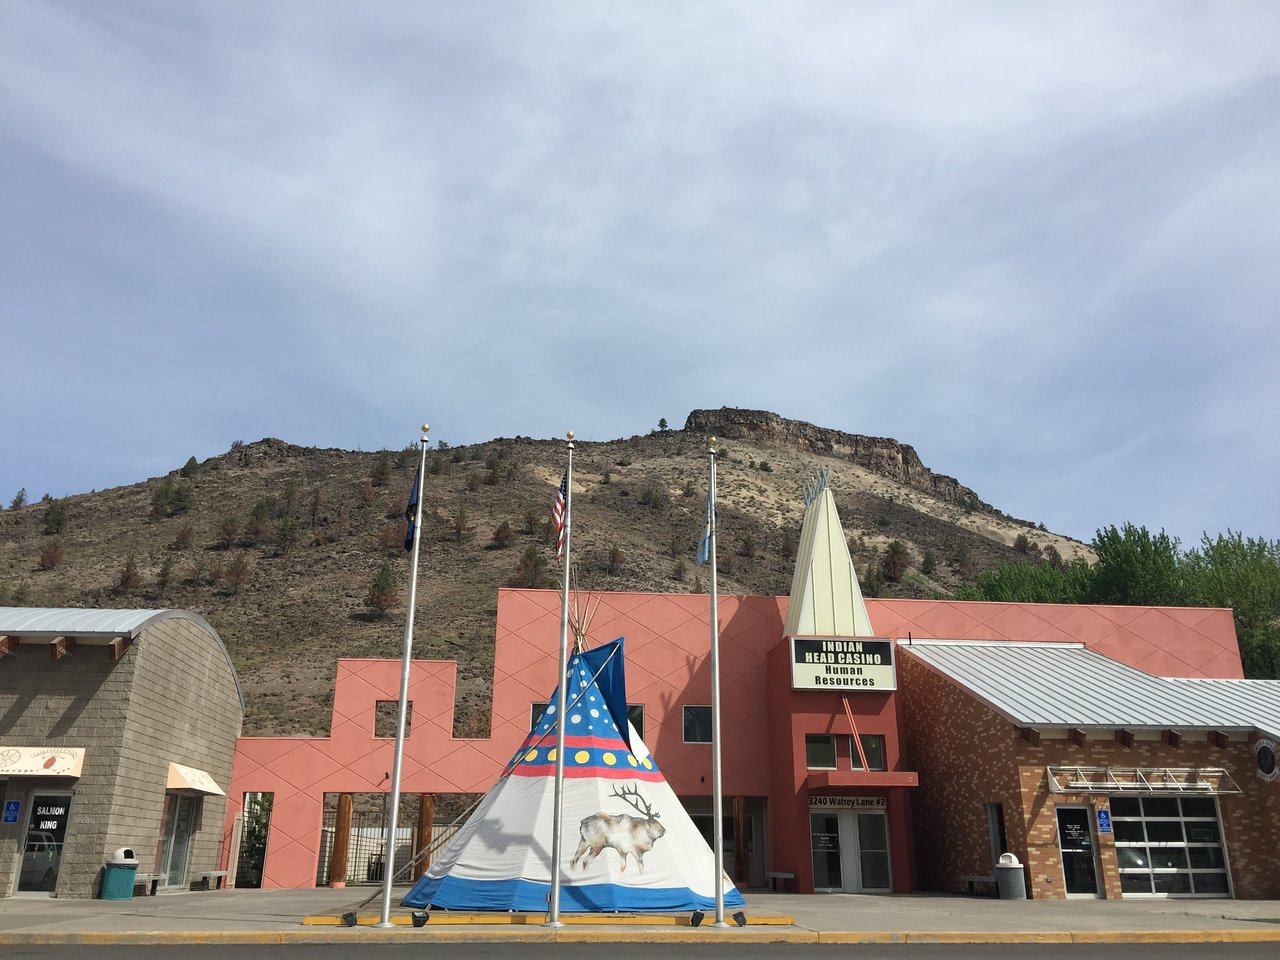 Indian Head Casino Warm Springs 2020 All You Need To Know